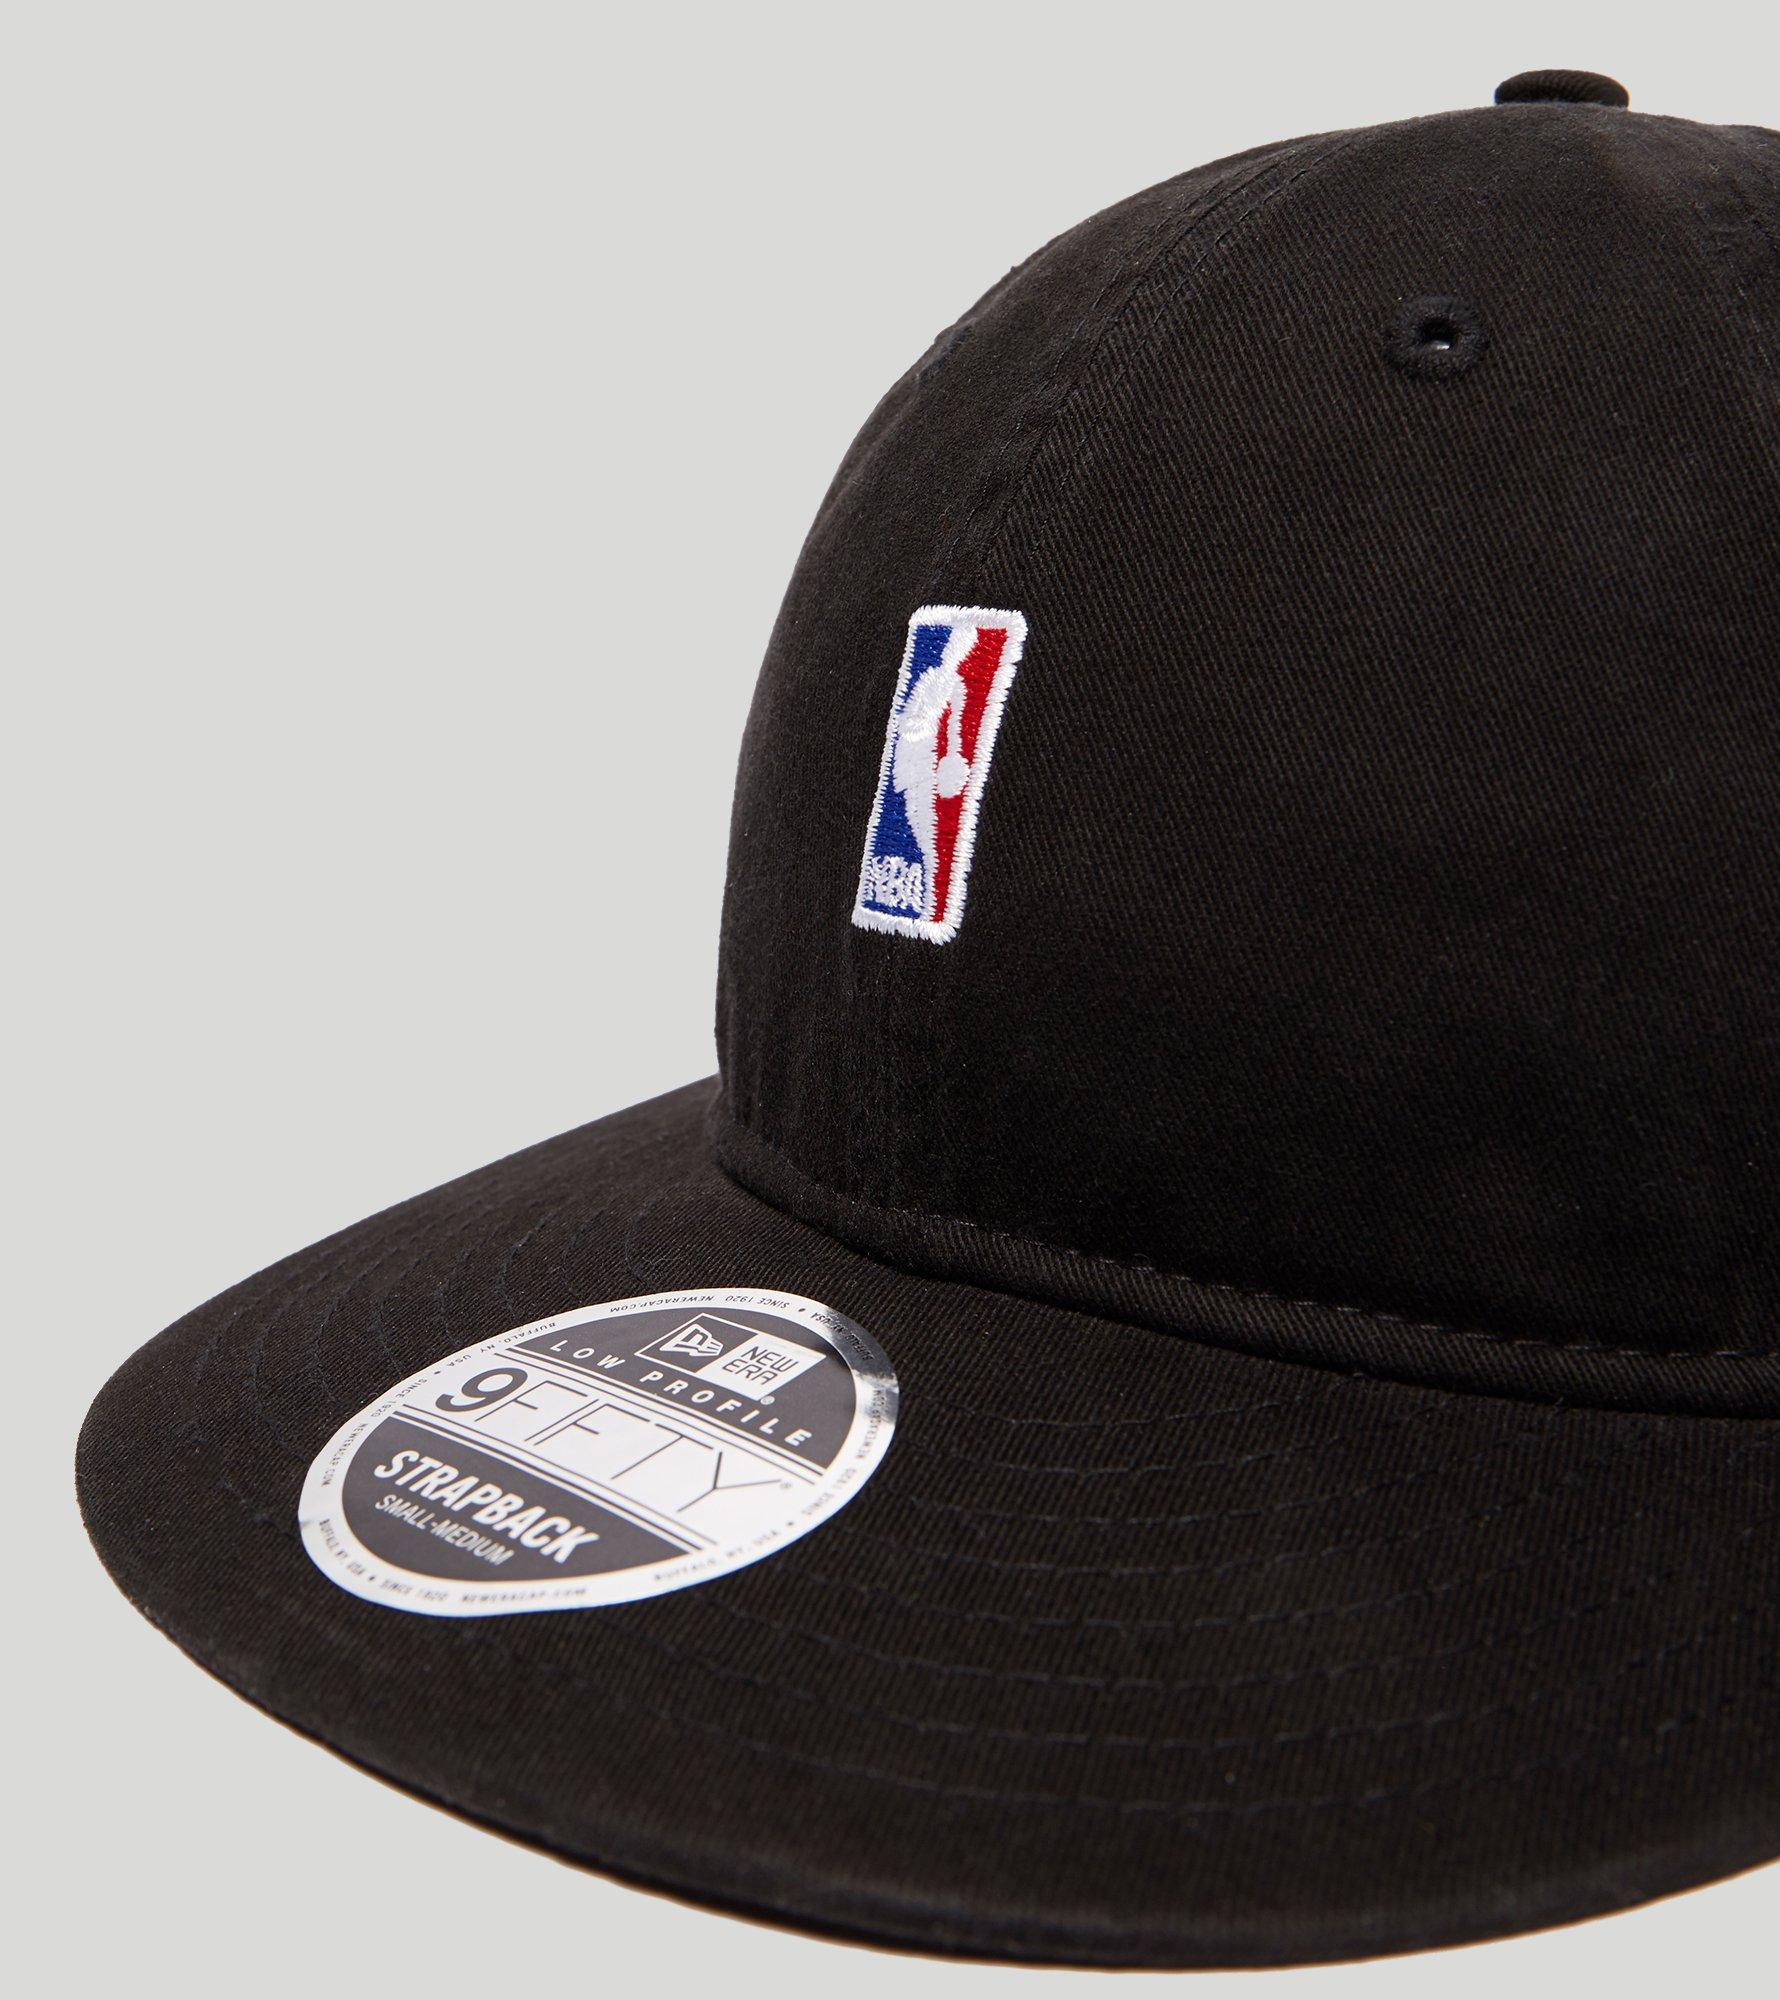 Lyst - KTZ 9fifty Low Nba Logo Cap in Black for Men cccc8922d